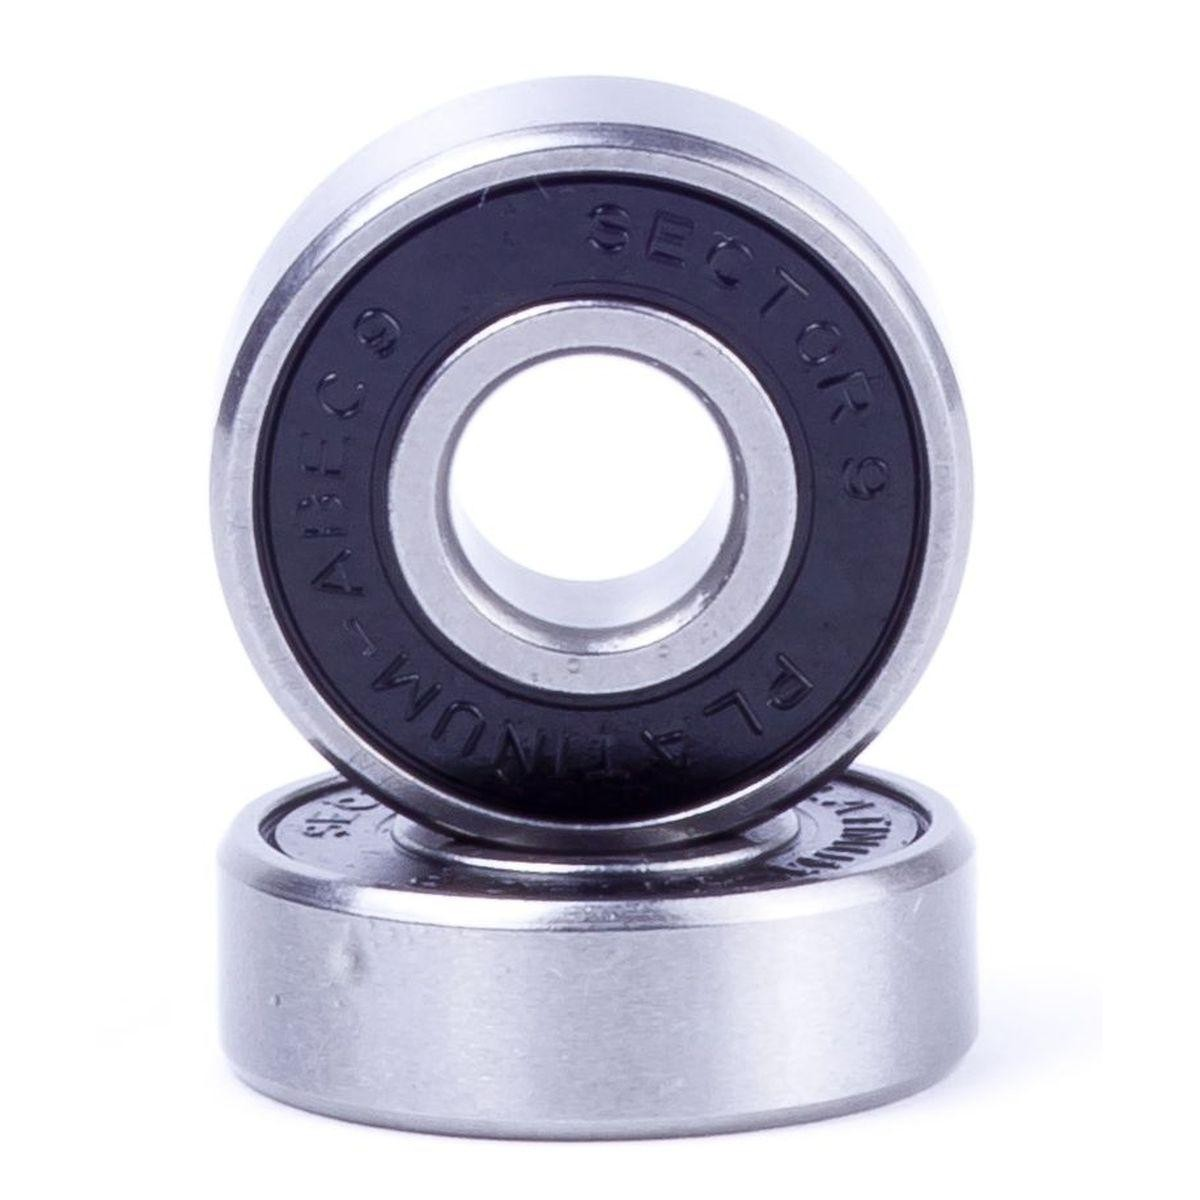 Sector 9 Abec 9 Bearings - Platinum Series